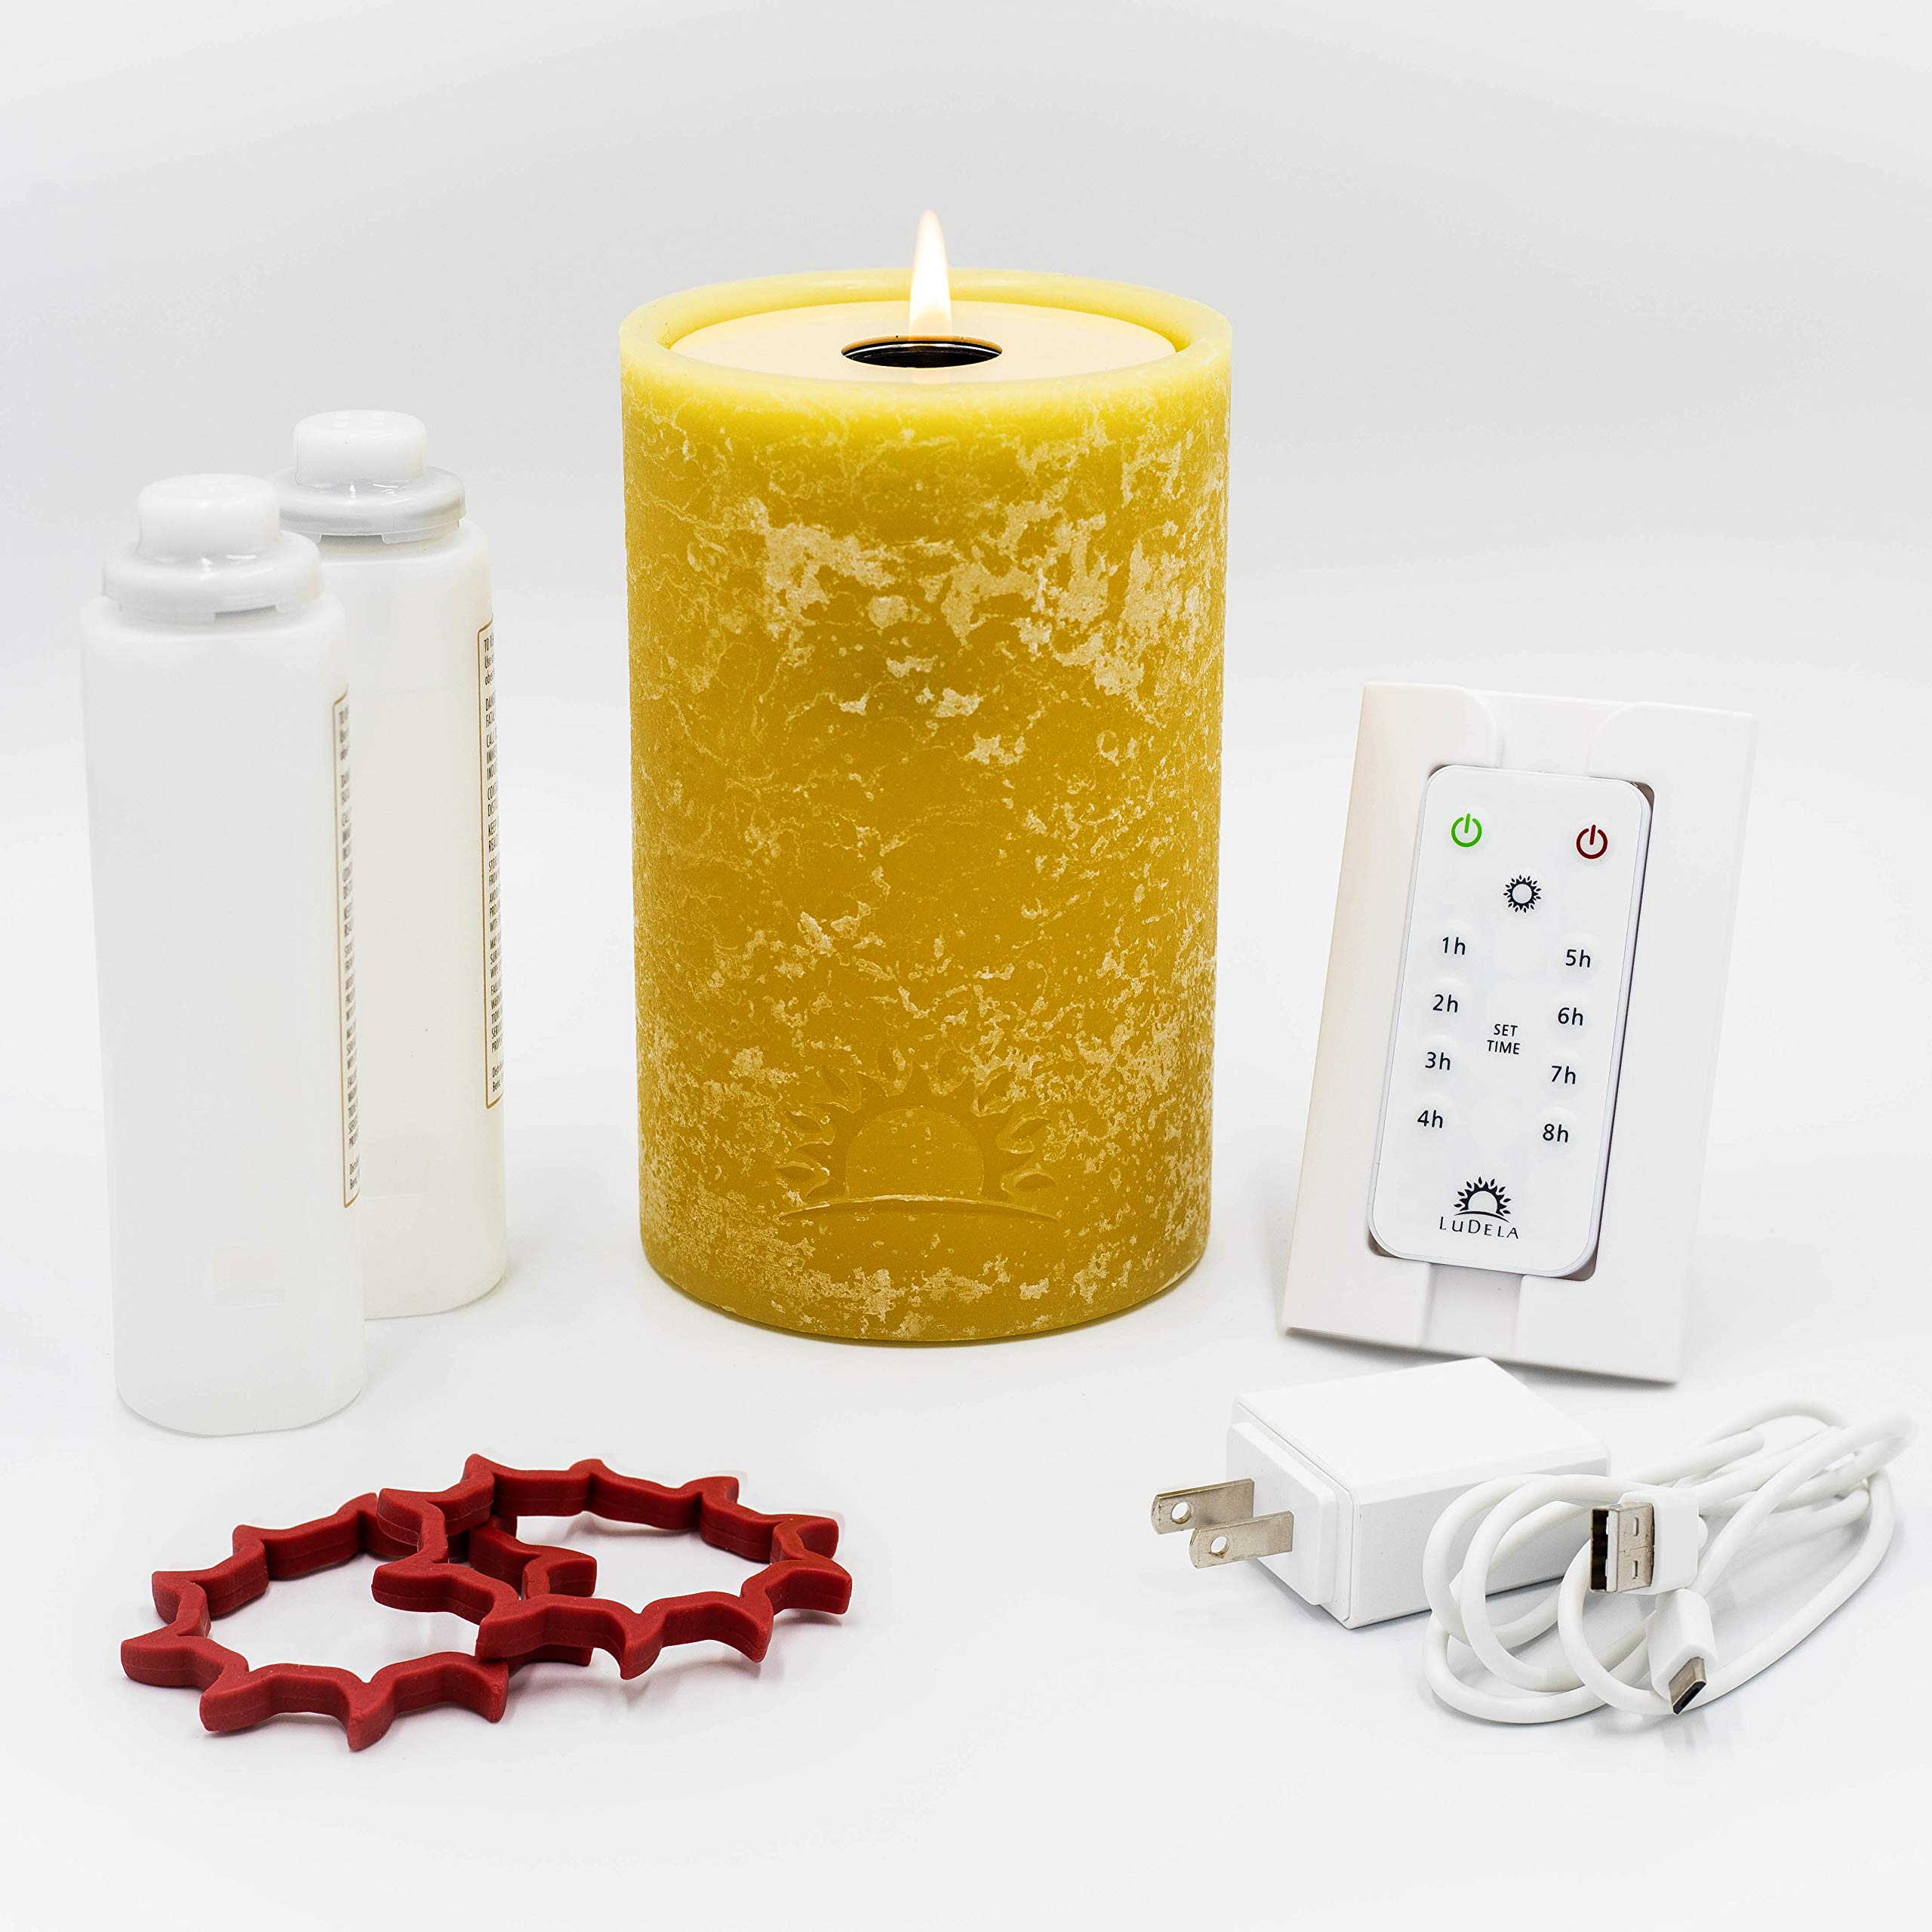 LuDela Remote Control Real-Flame Candle Starter Set | Smart Candle with Remote Control and Alexa Compatibility | Built-in Safety Technology | Always Bright, Natural Candlelight at a Touch of a Button